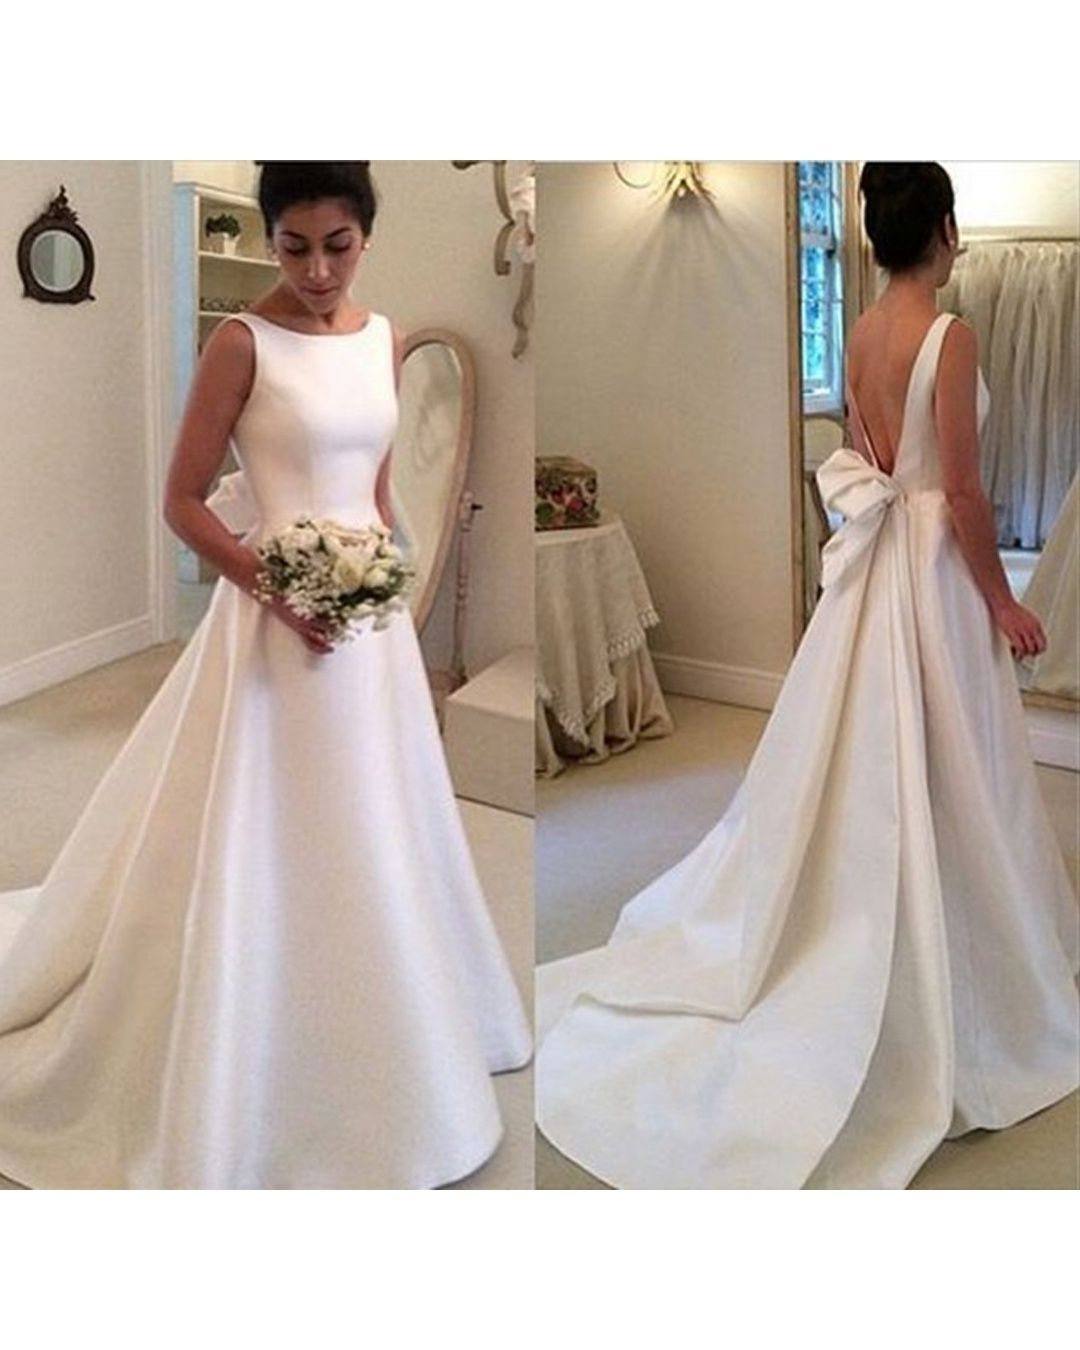 007972257a51f Simple Ball Gown White Satin Long Wedding Dress Open Back Ribbon Train with  Bow